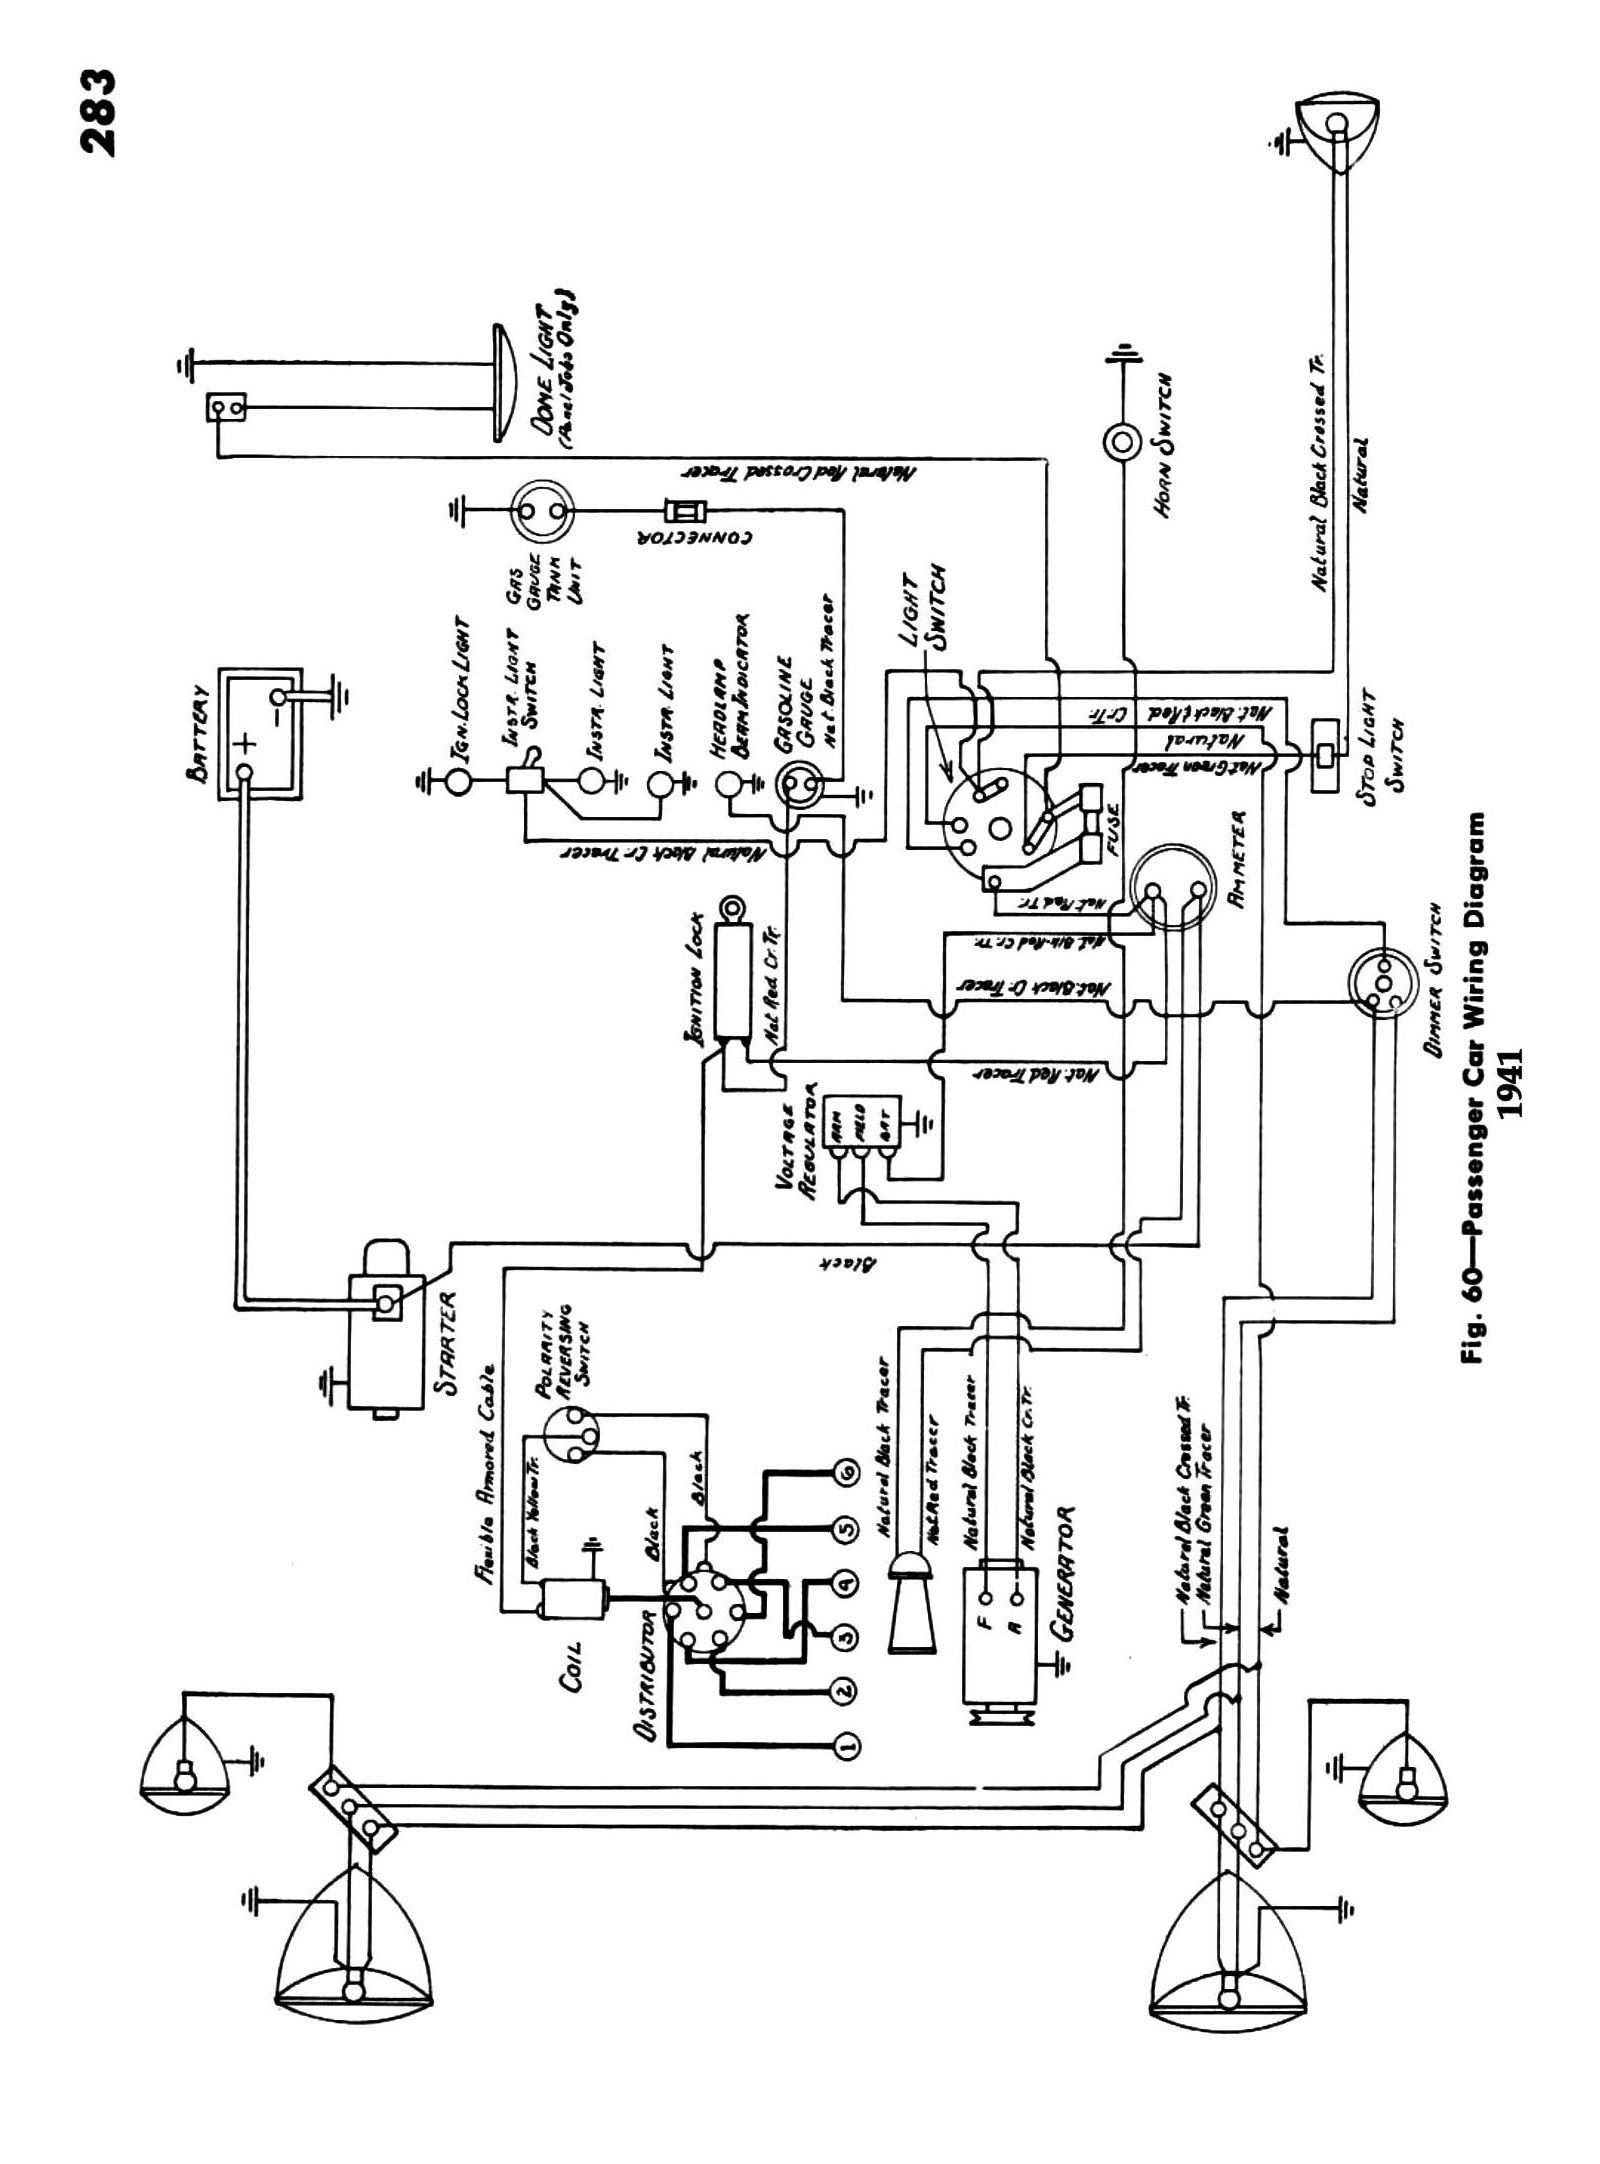 hight resolution of wiring diagram 1947 1953 also 1941 chevy special deluxe moreover 1941 chevy wiring harness